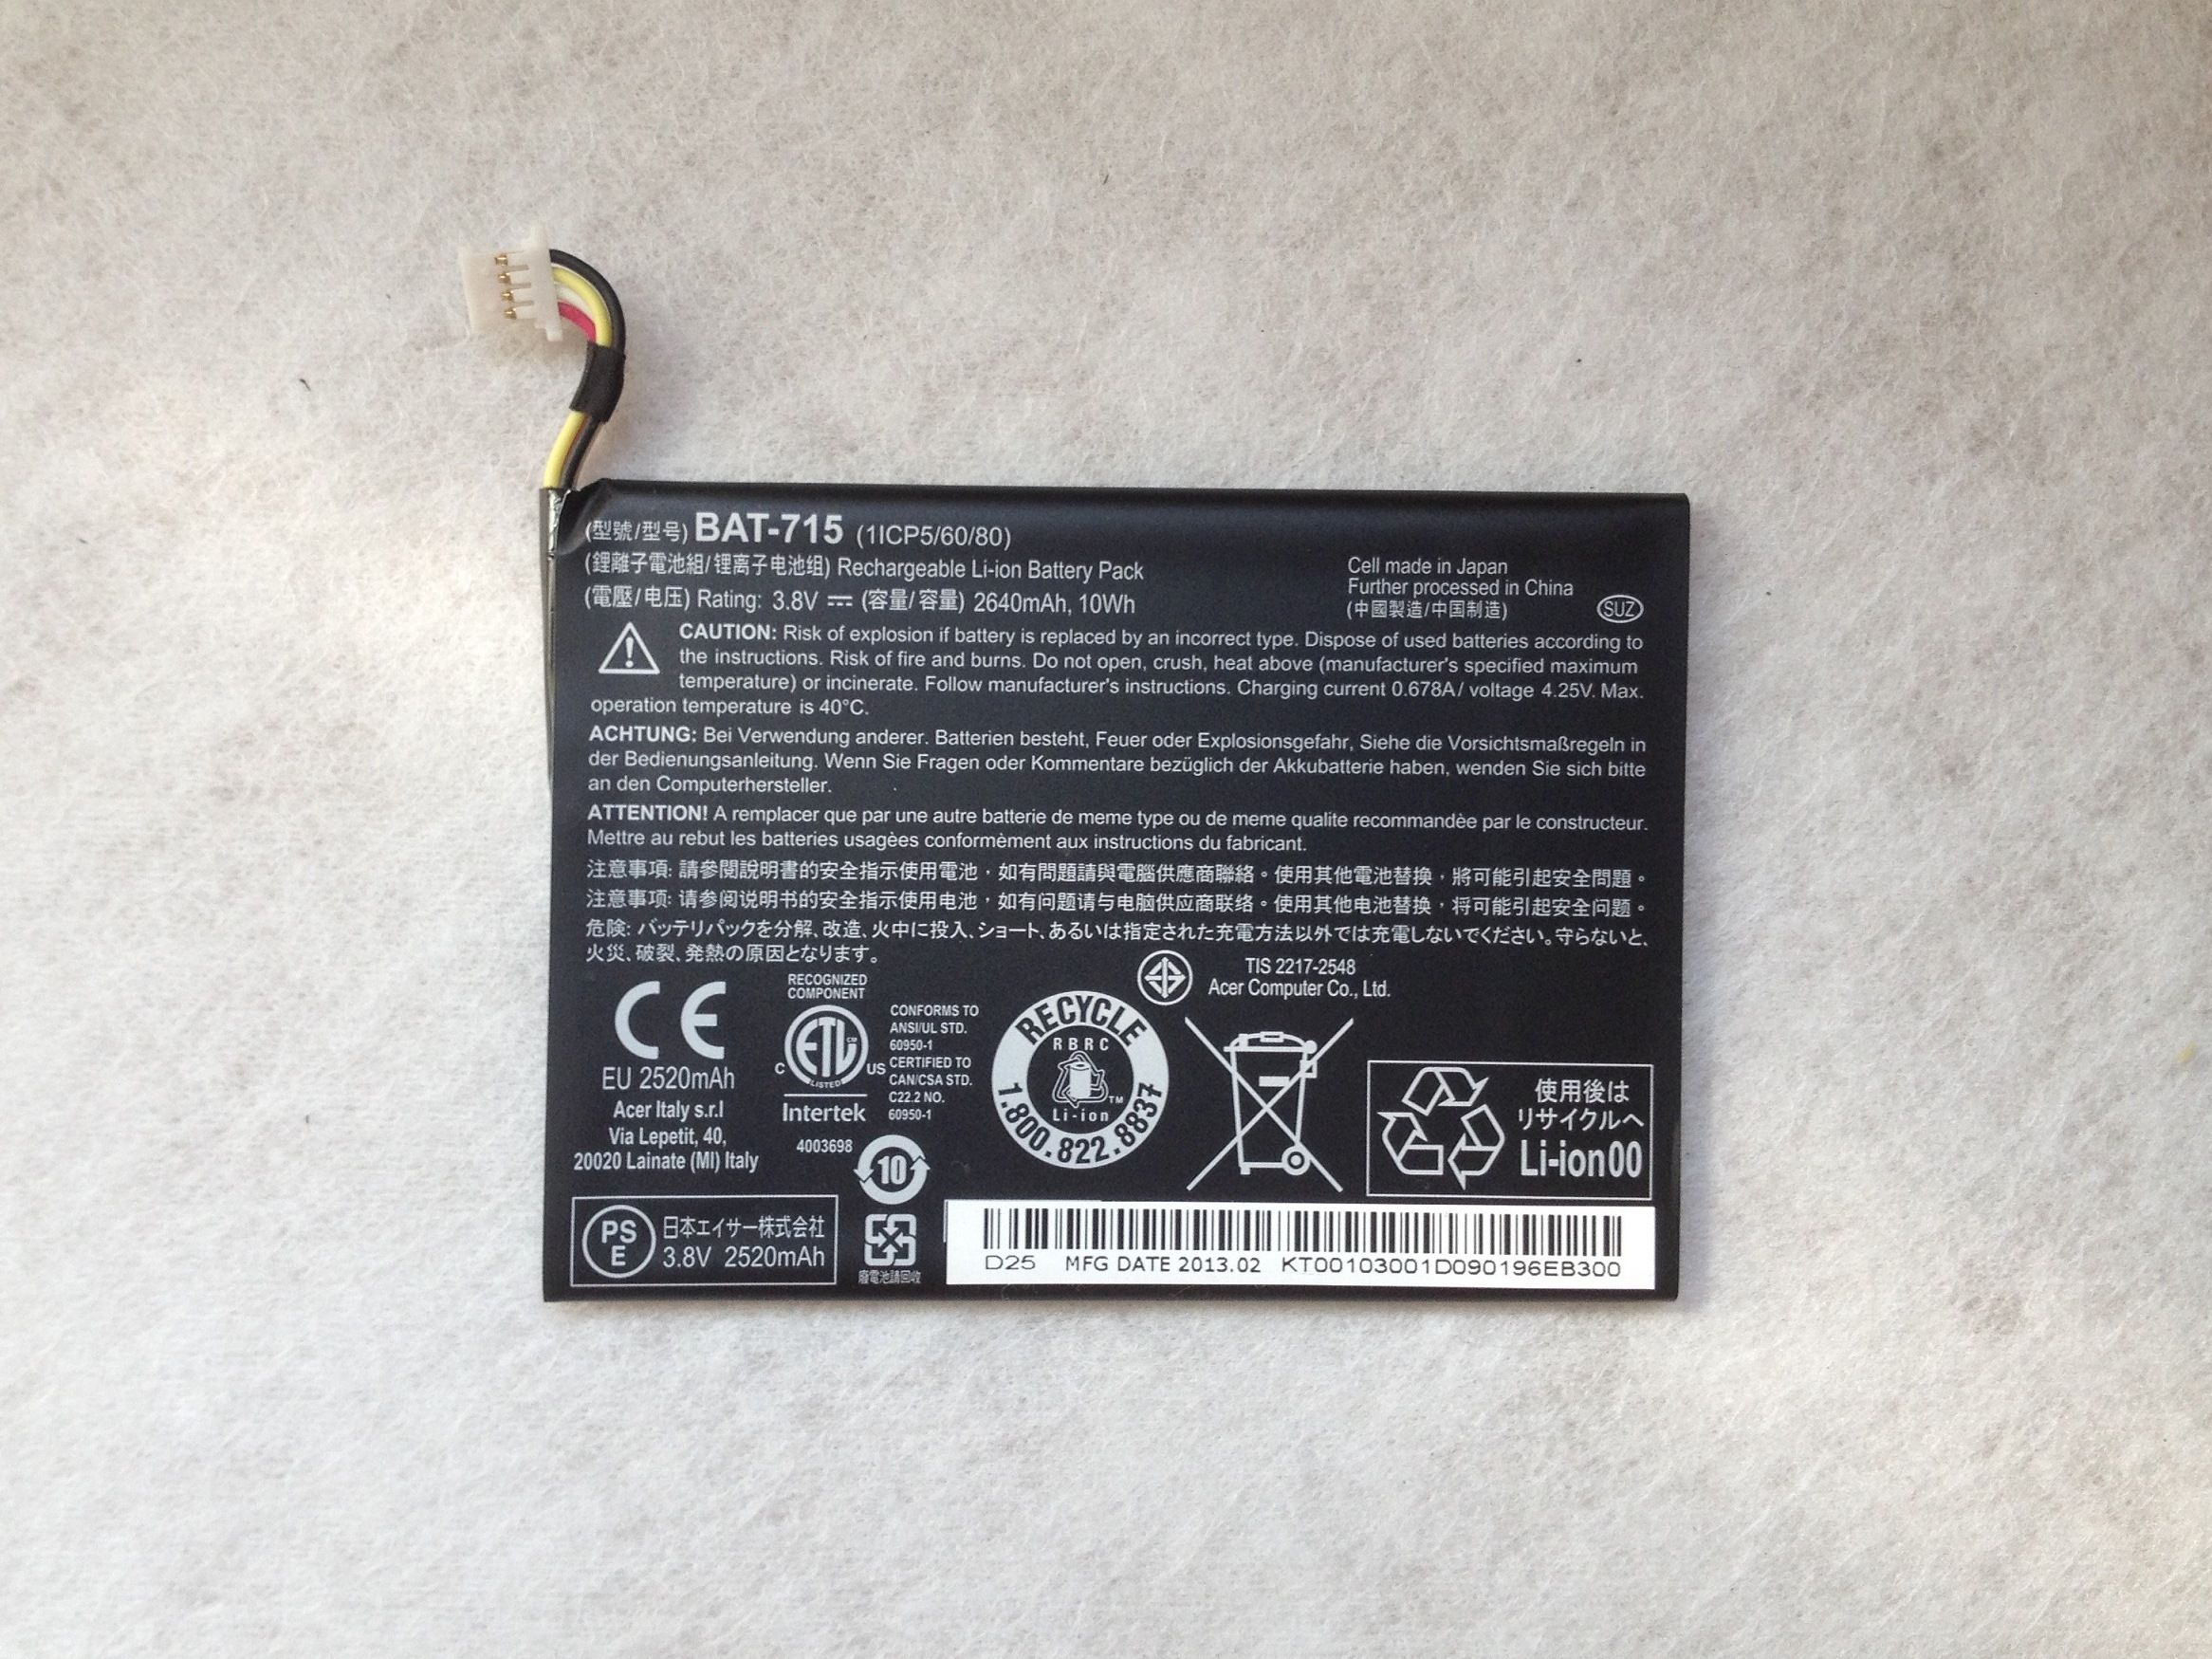 Acer Iconia B1 A71 LCD Display Replacement Battery